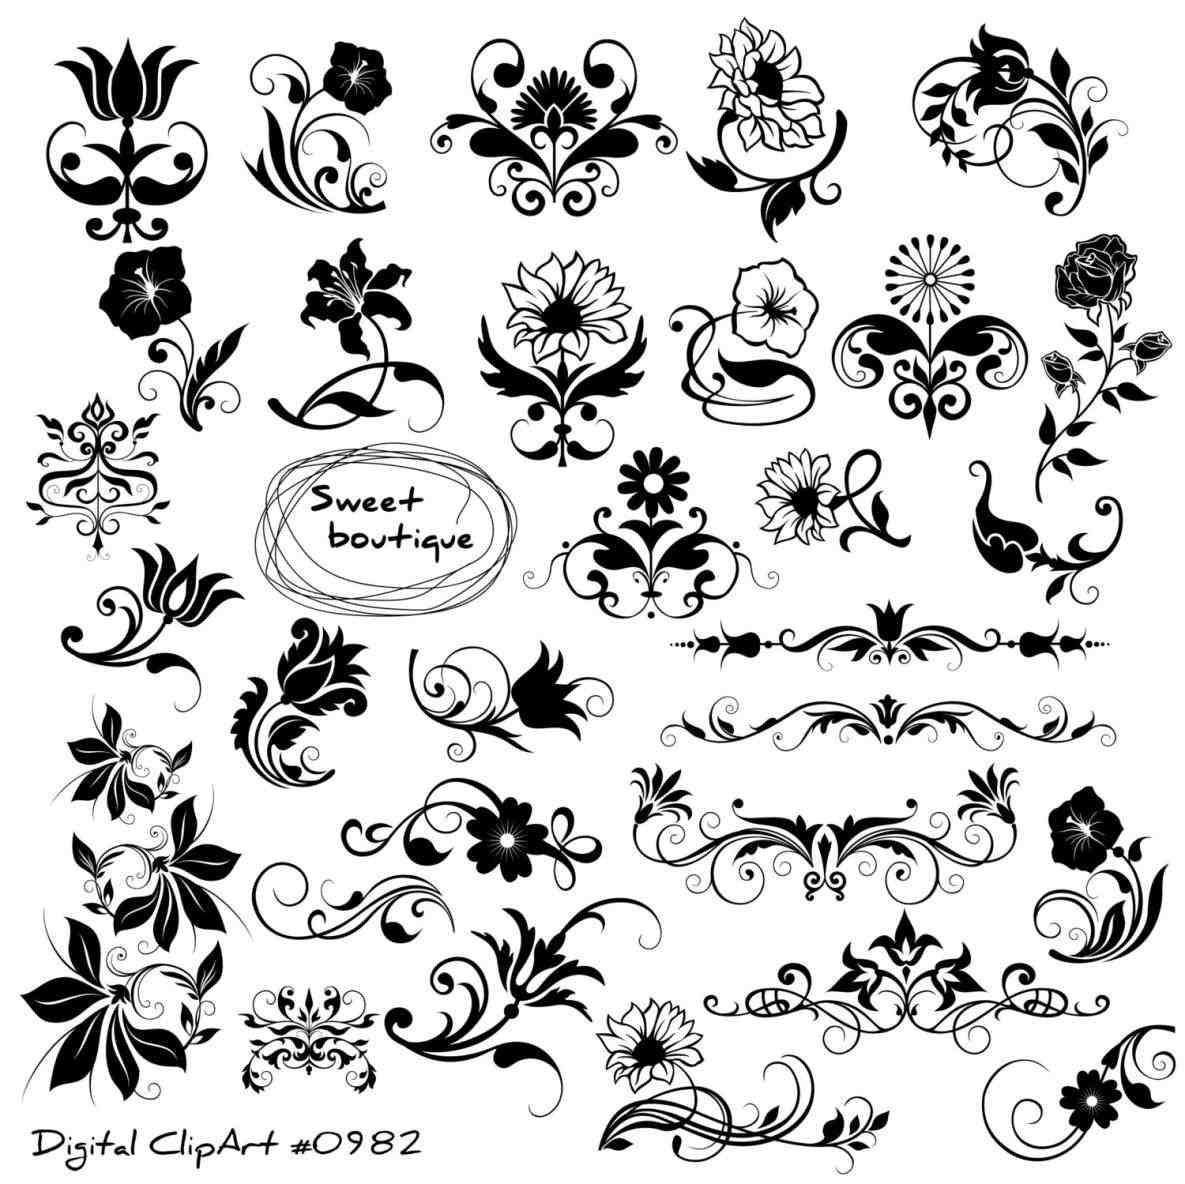 top 10 new post wedding flower clip art black and white visit Top 10 DSLR top 10 new post wedding flower clip art black and white visit wedbridal site